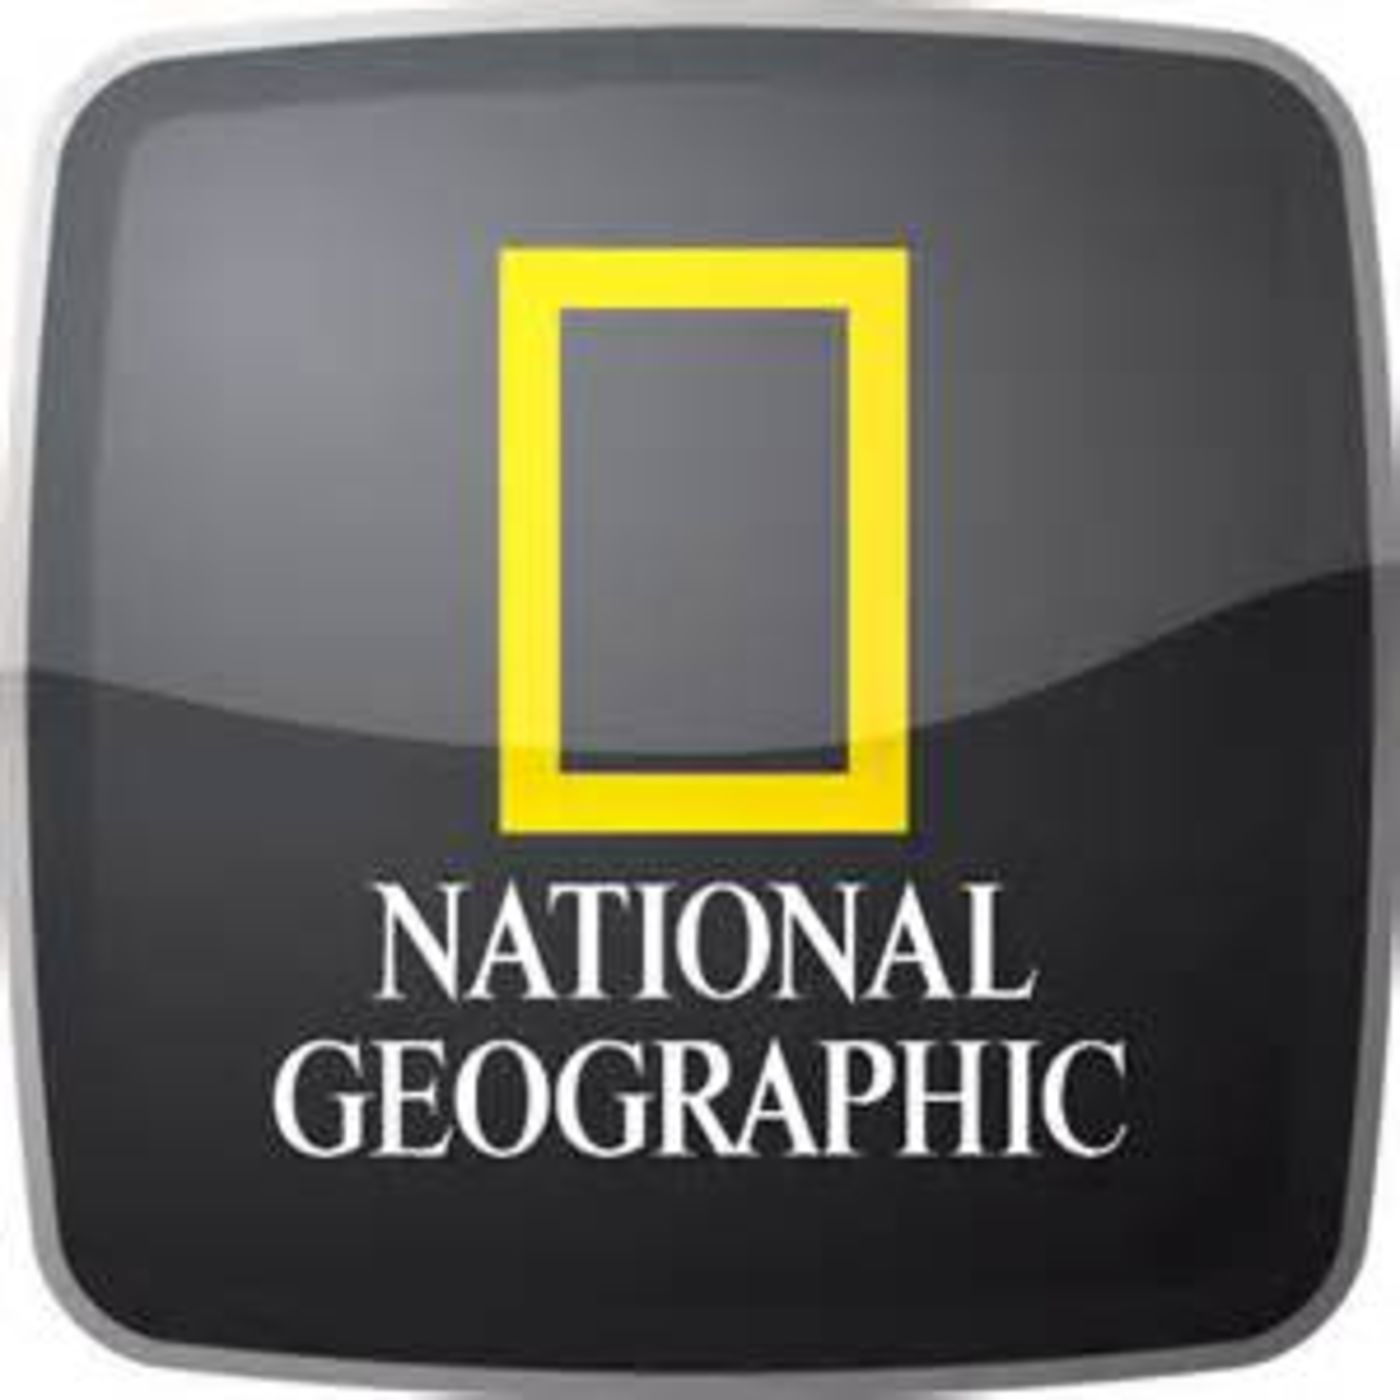 National Geographic Celebrates 100 Years - Ford Cochran